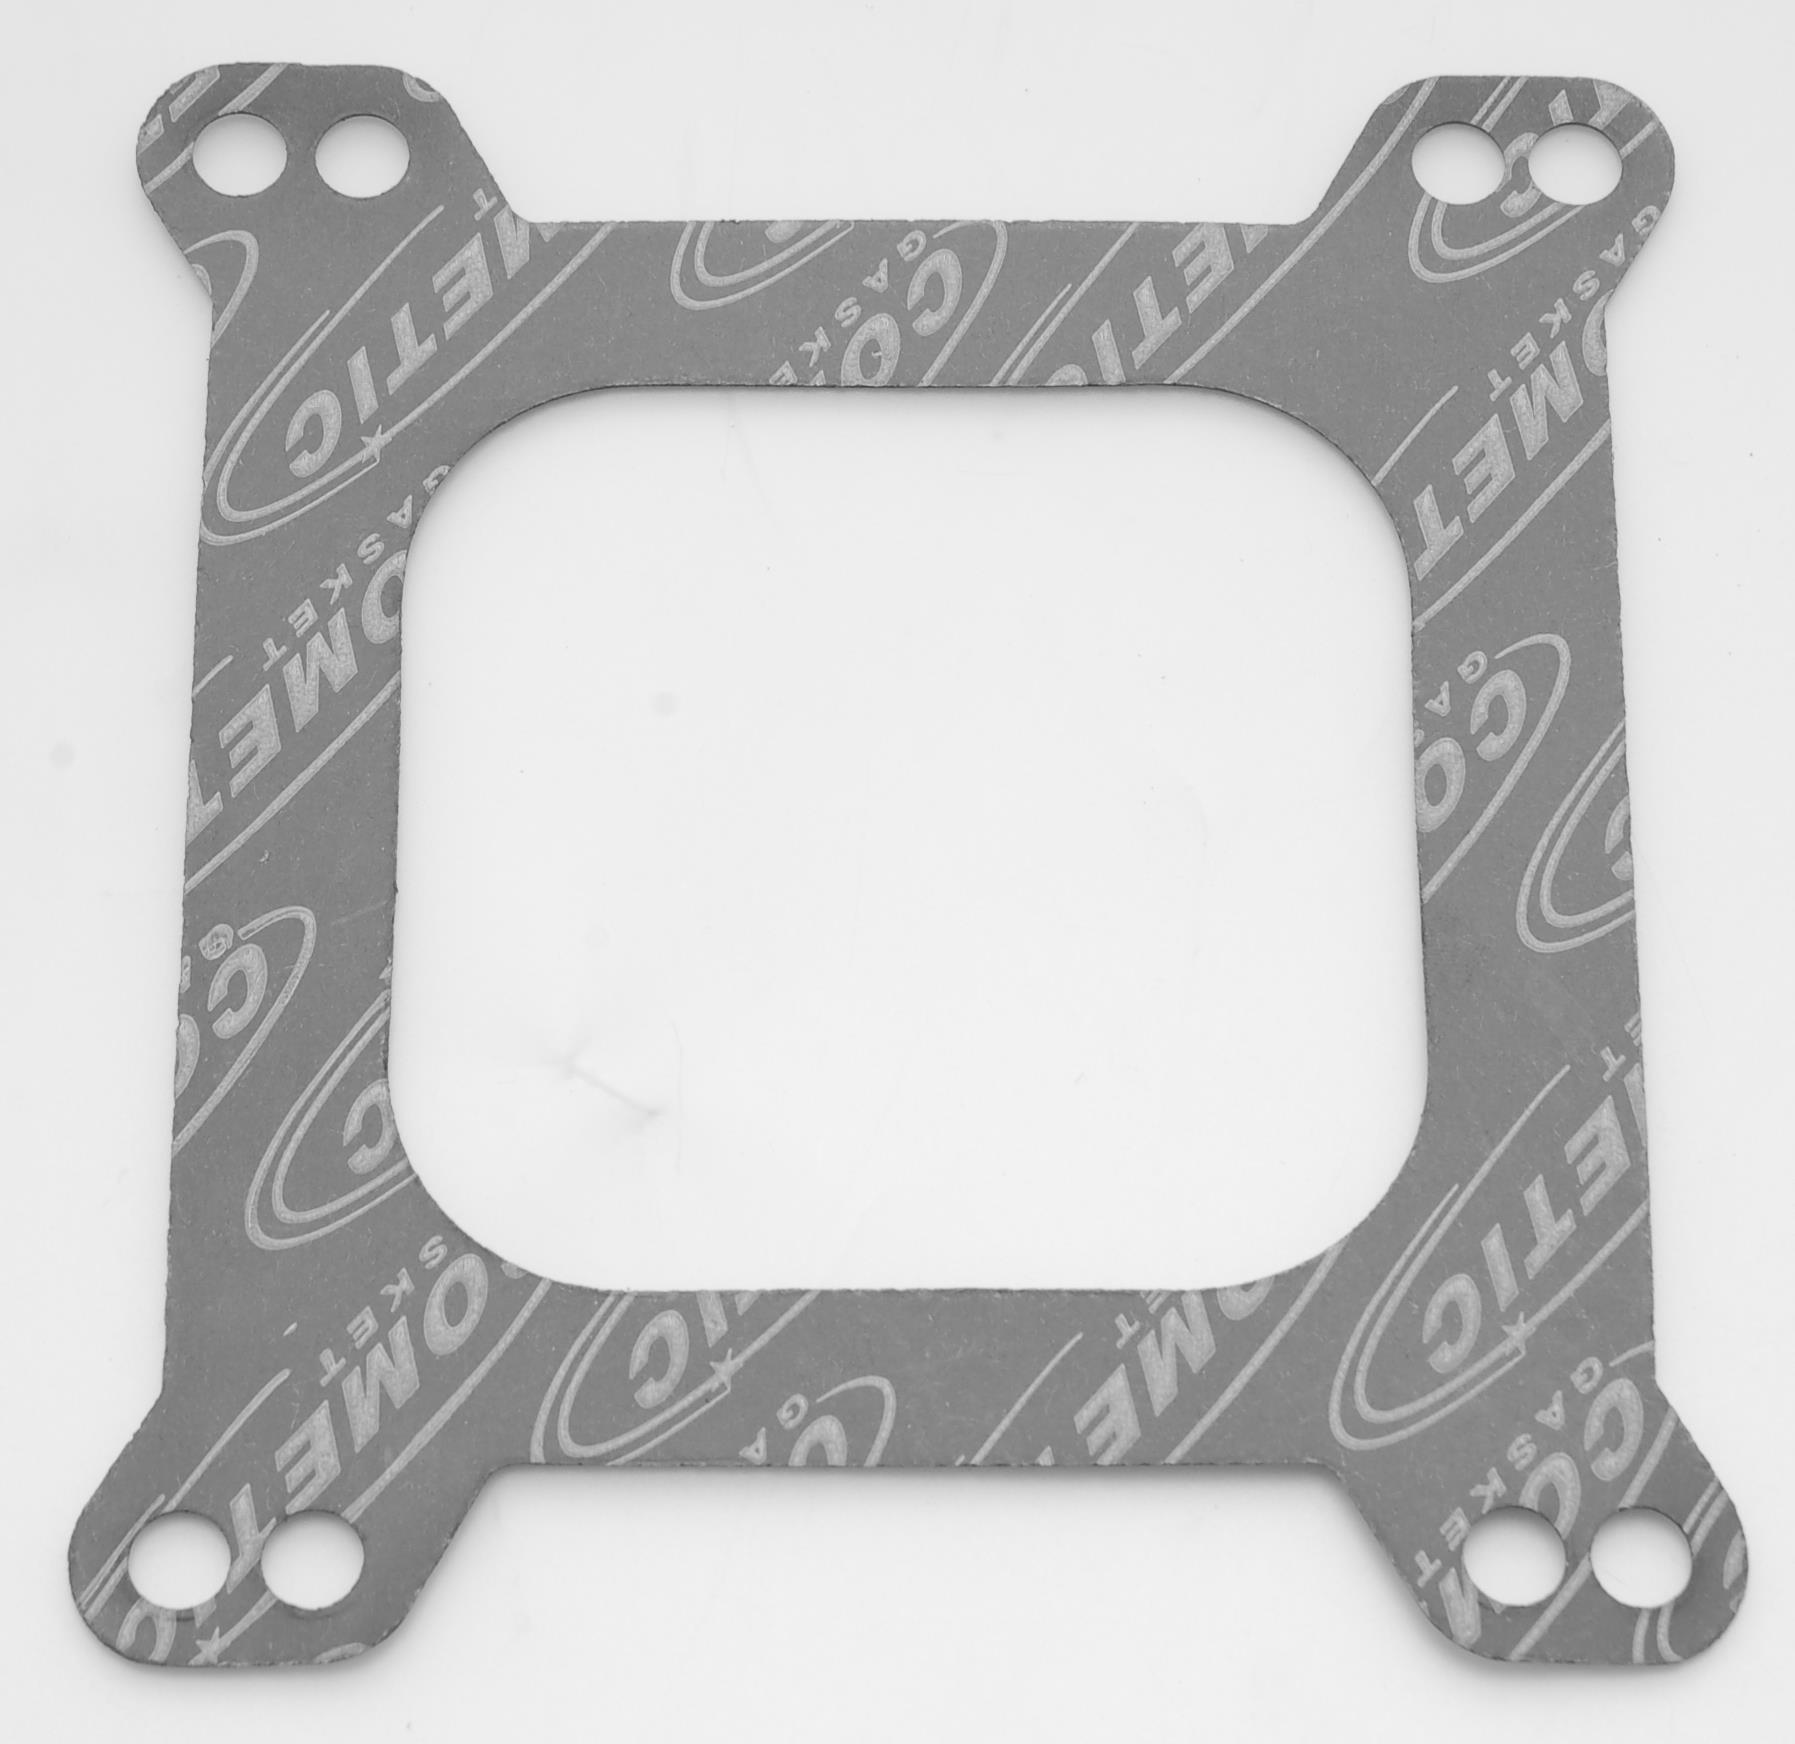 C5263 Cometic Gasket Carburetor Base Plate Gasket For Use With Square